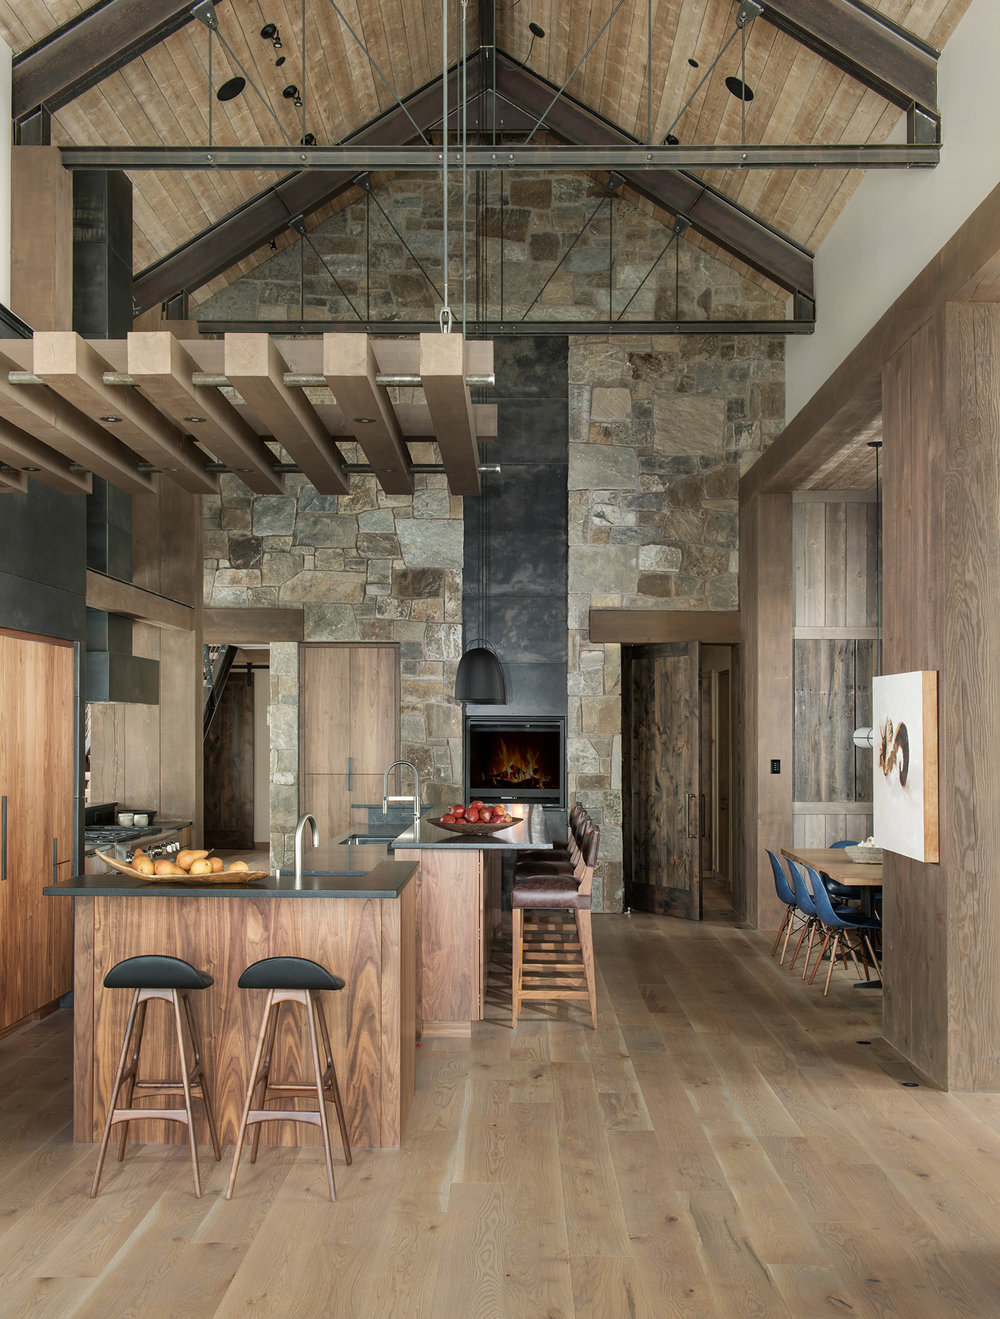 This kitchen... wow!  Who wouldn't enjoy having a real burning fire next to you while cooking?  Another great combination of stonework, wood, and steel.  Stunning!